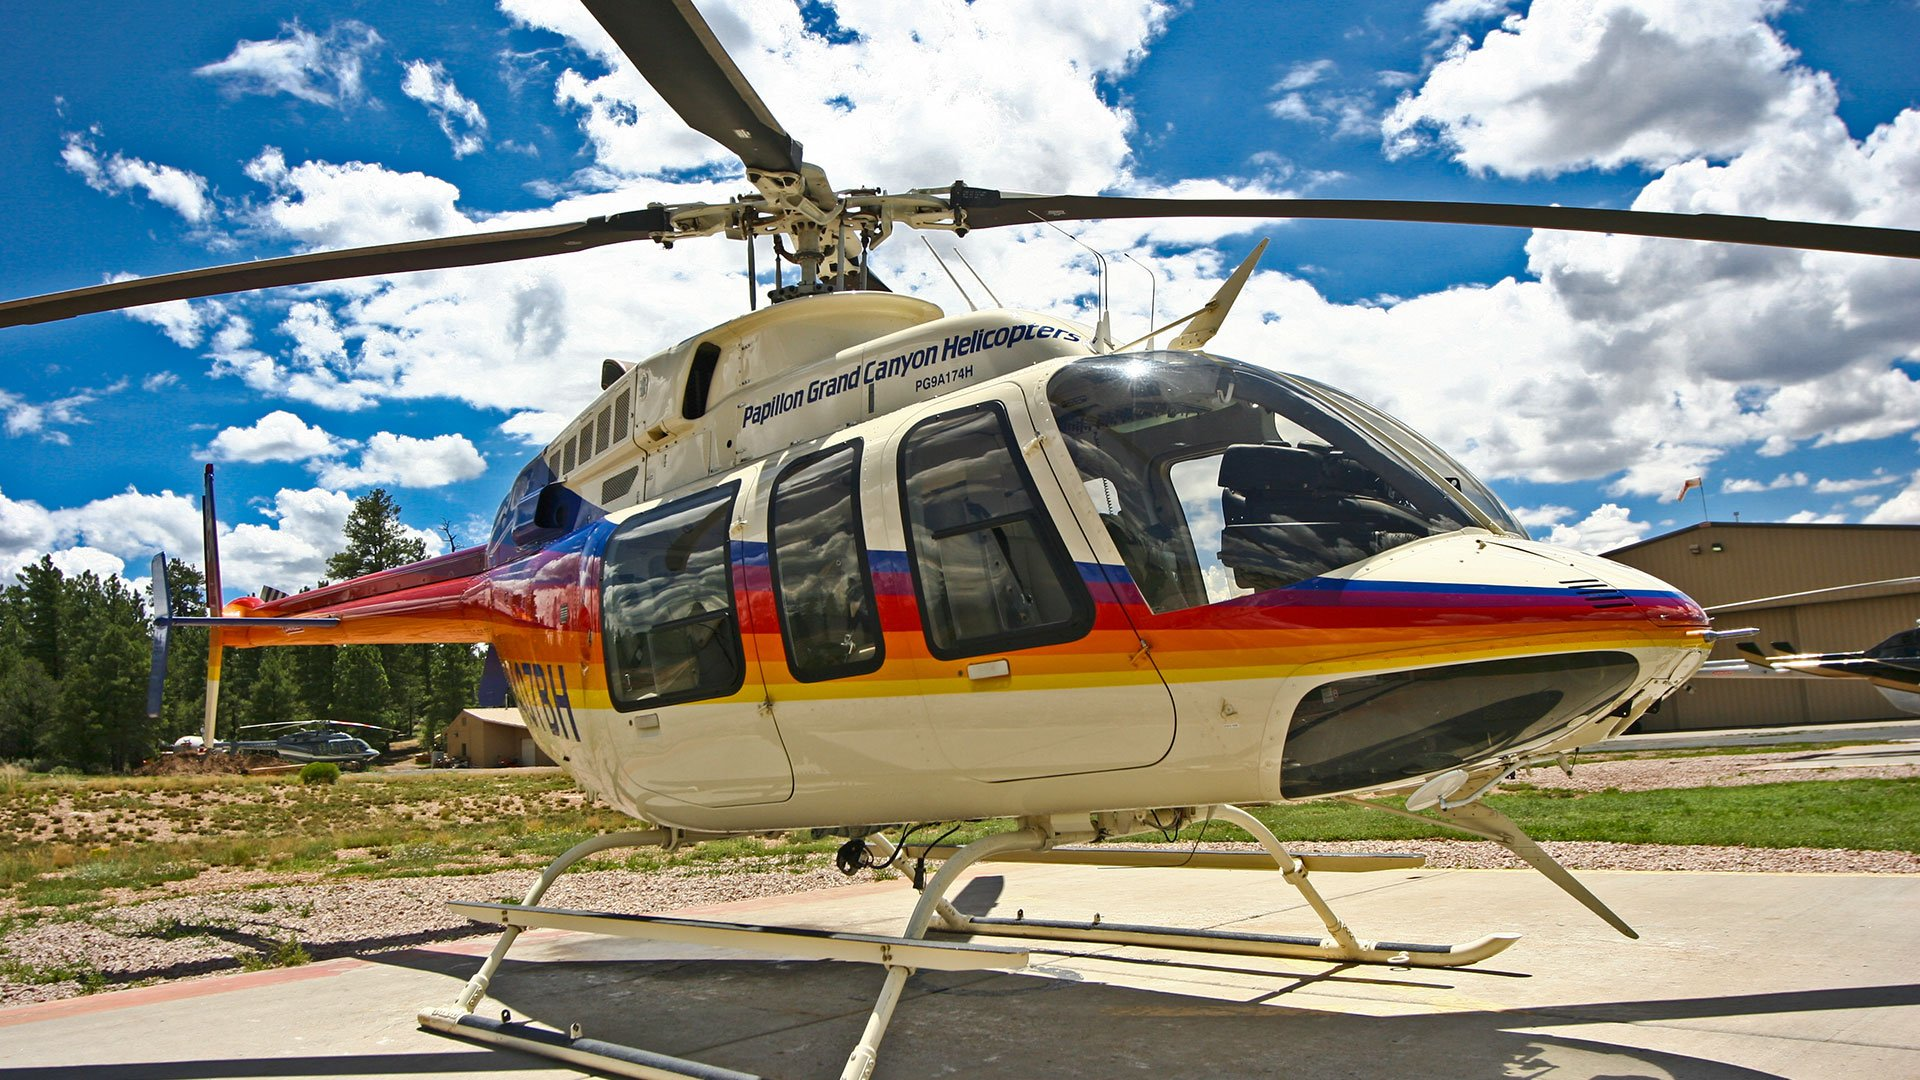 Bell helicopter landed at the Papillon heliport in Grand Canyon National Park